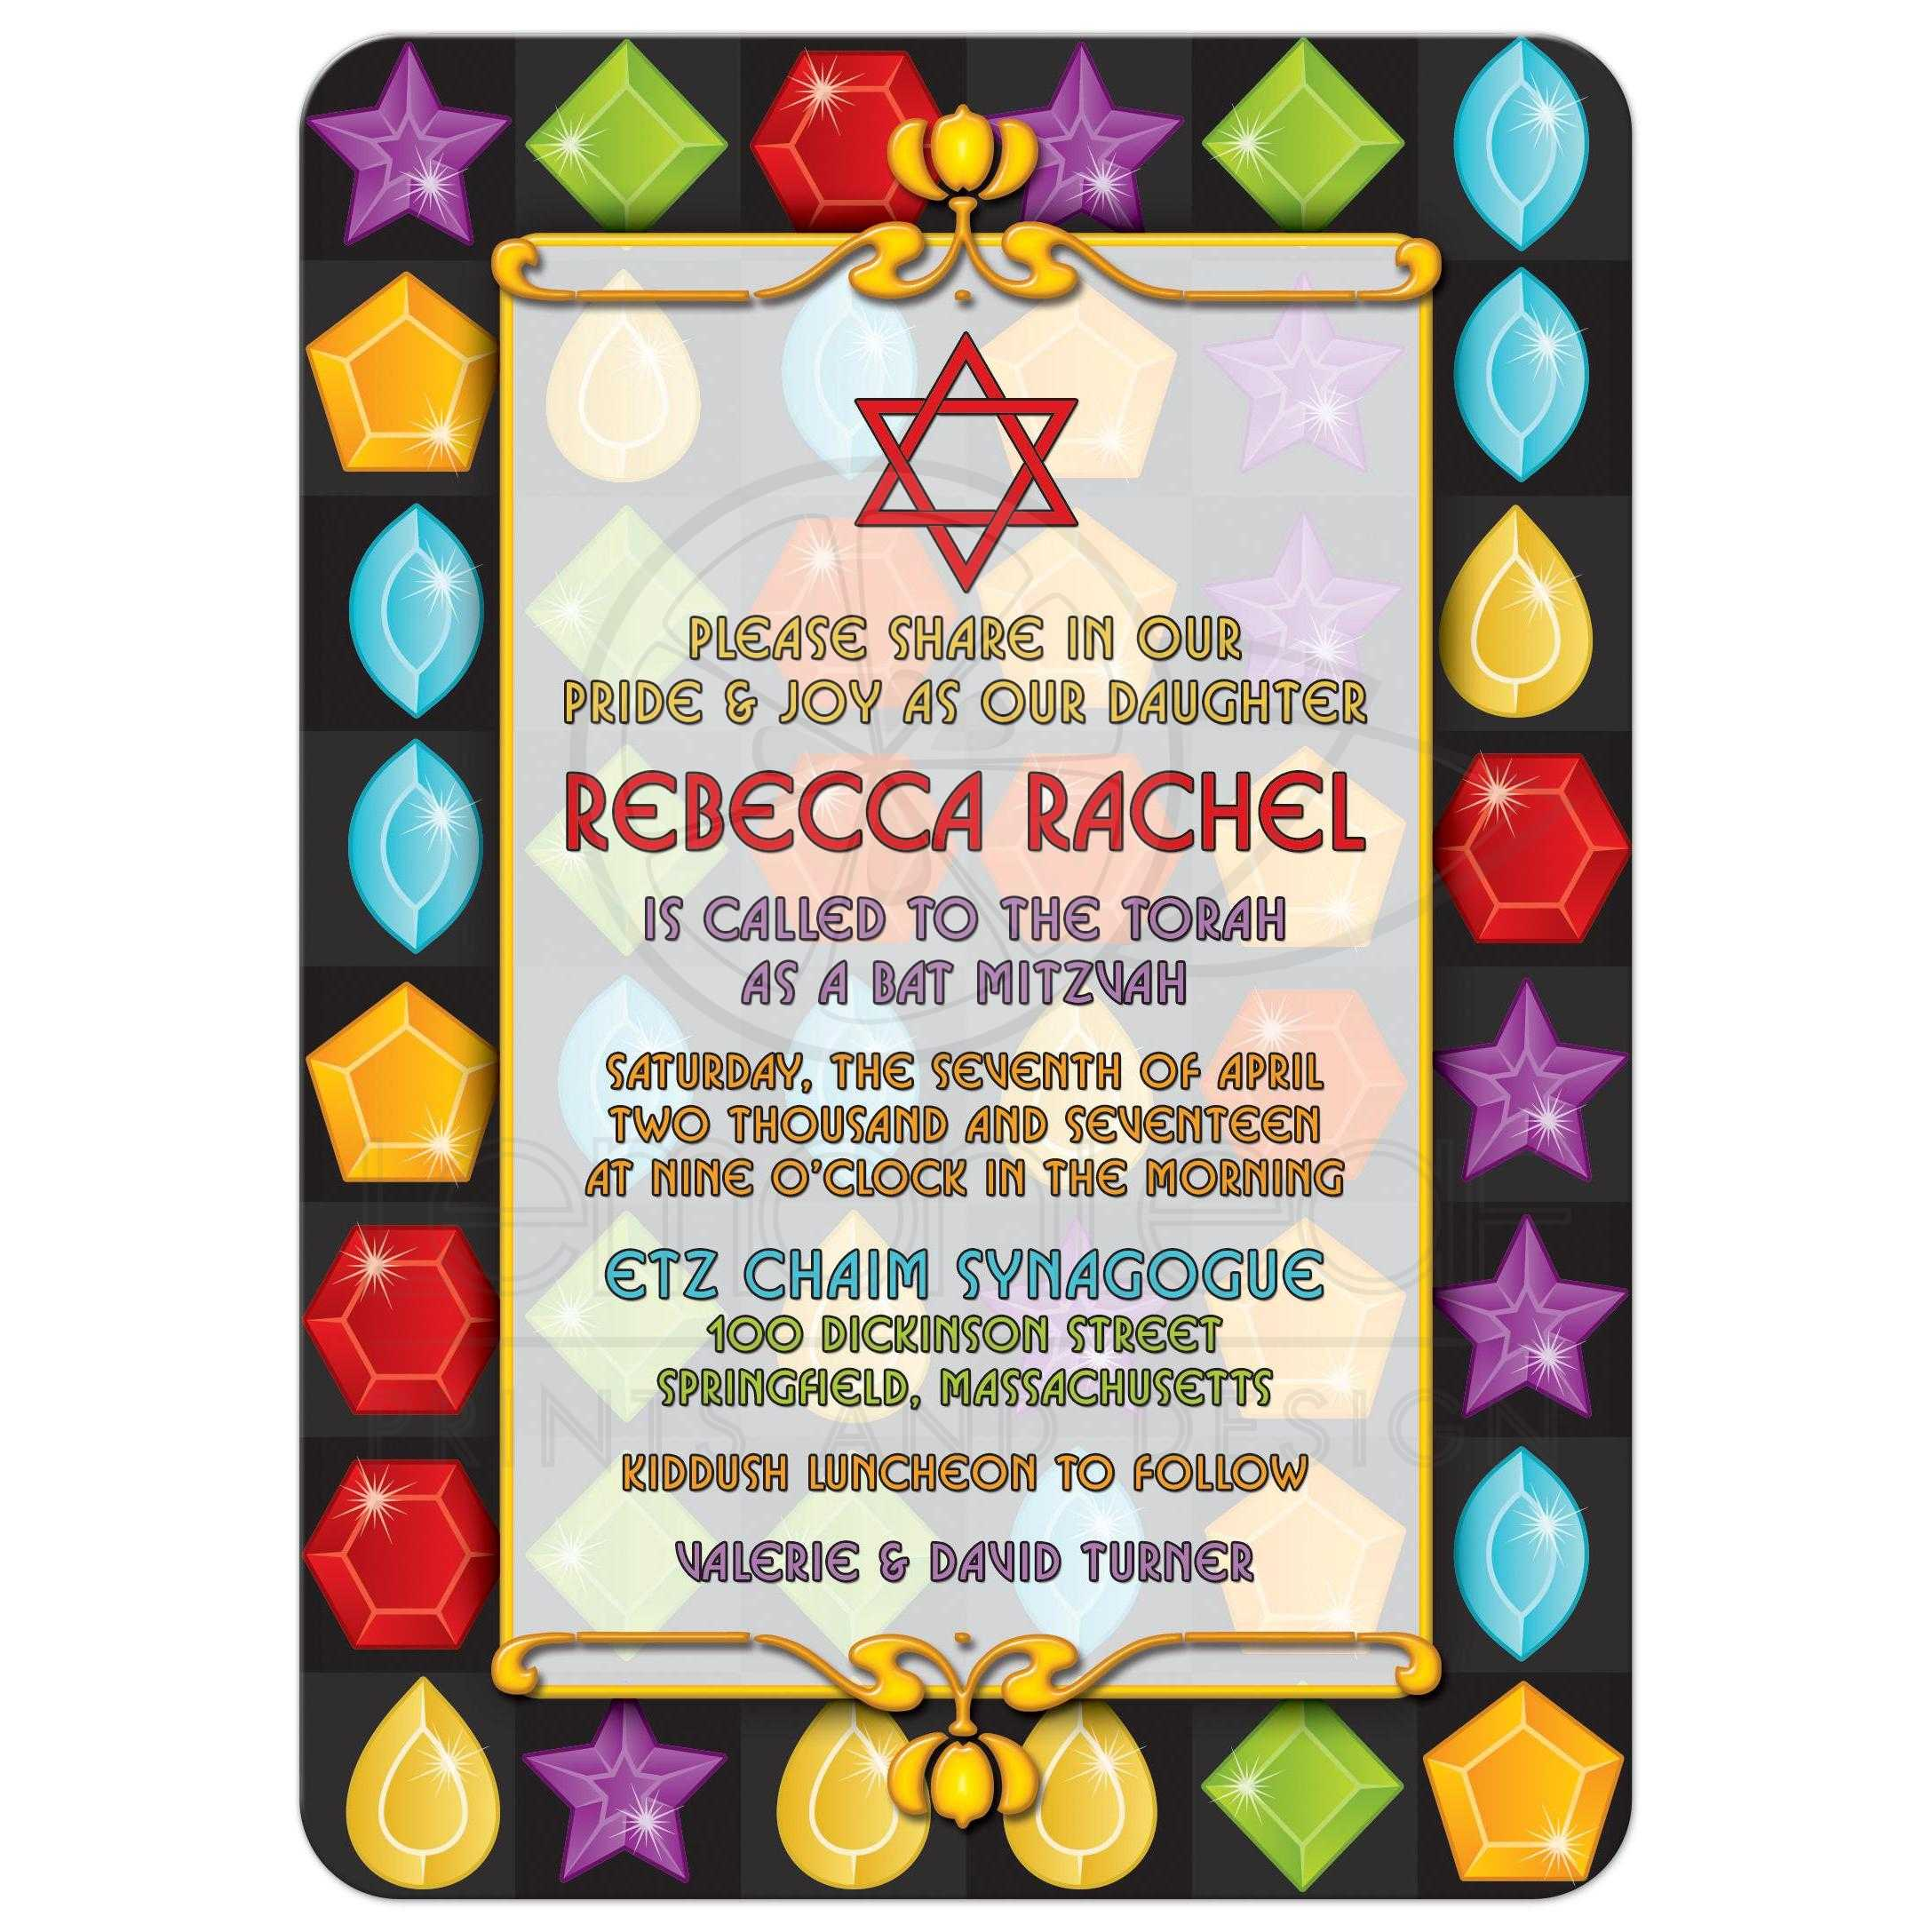 Jewel Puzzle Video Game Bat Mitzvah Invitation